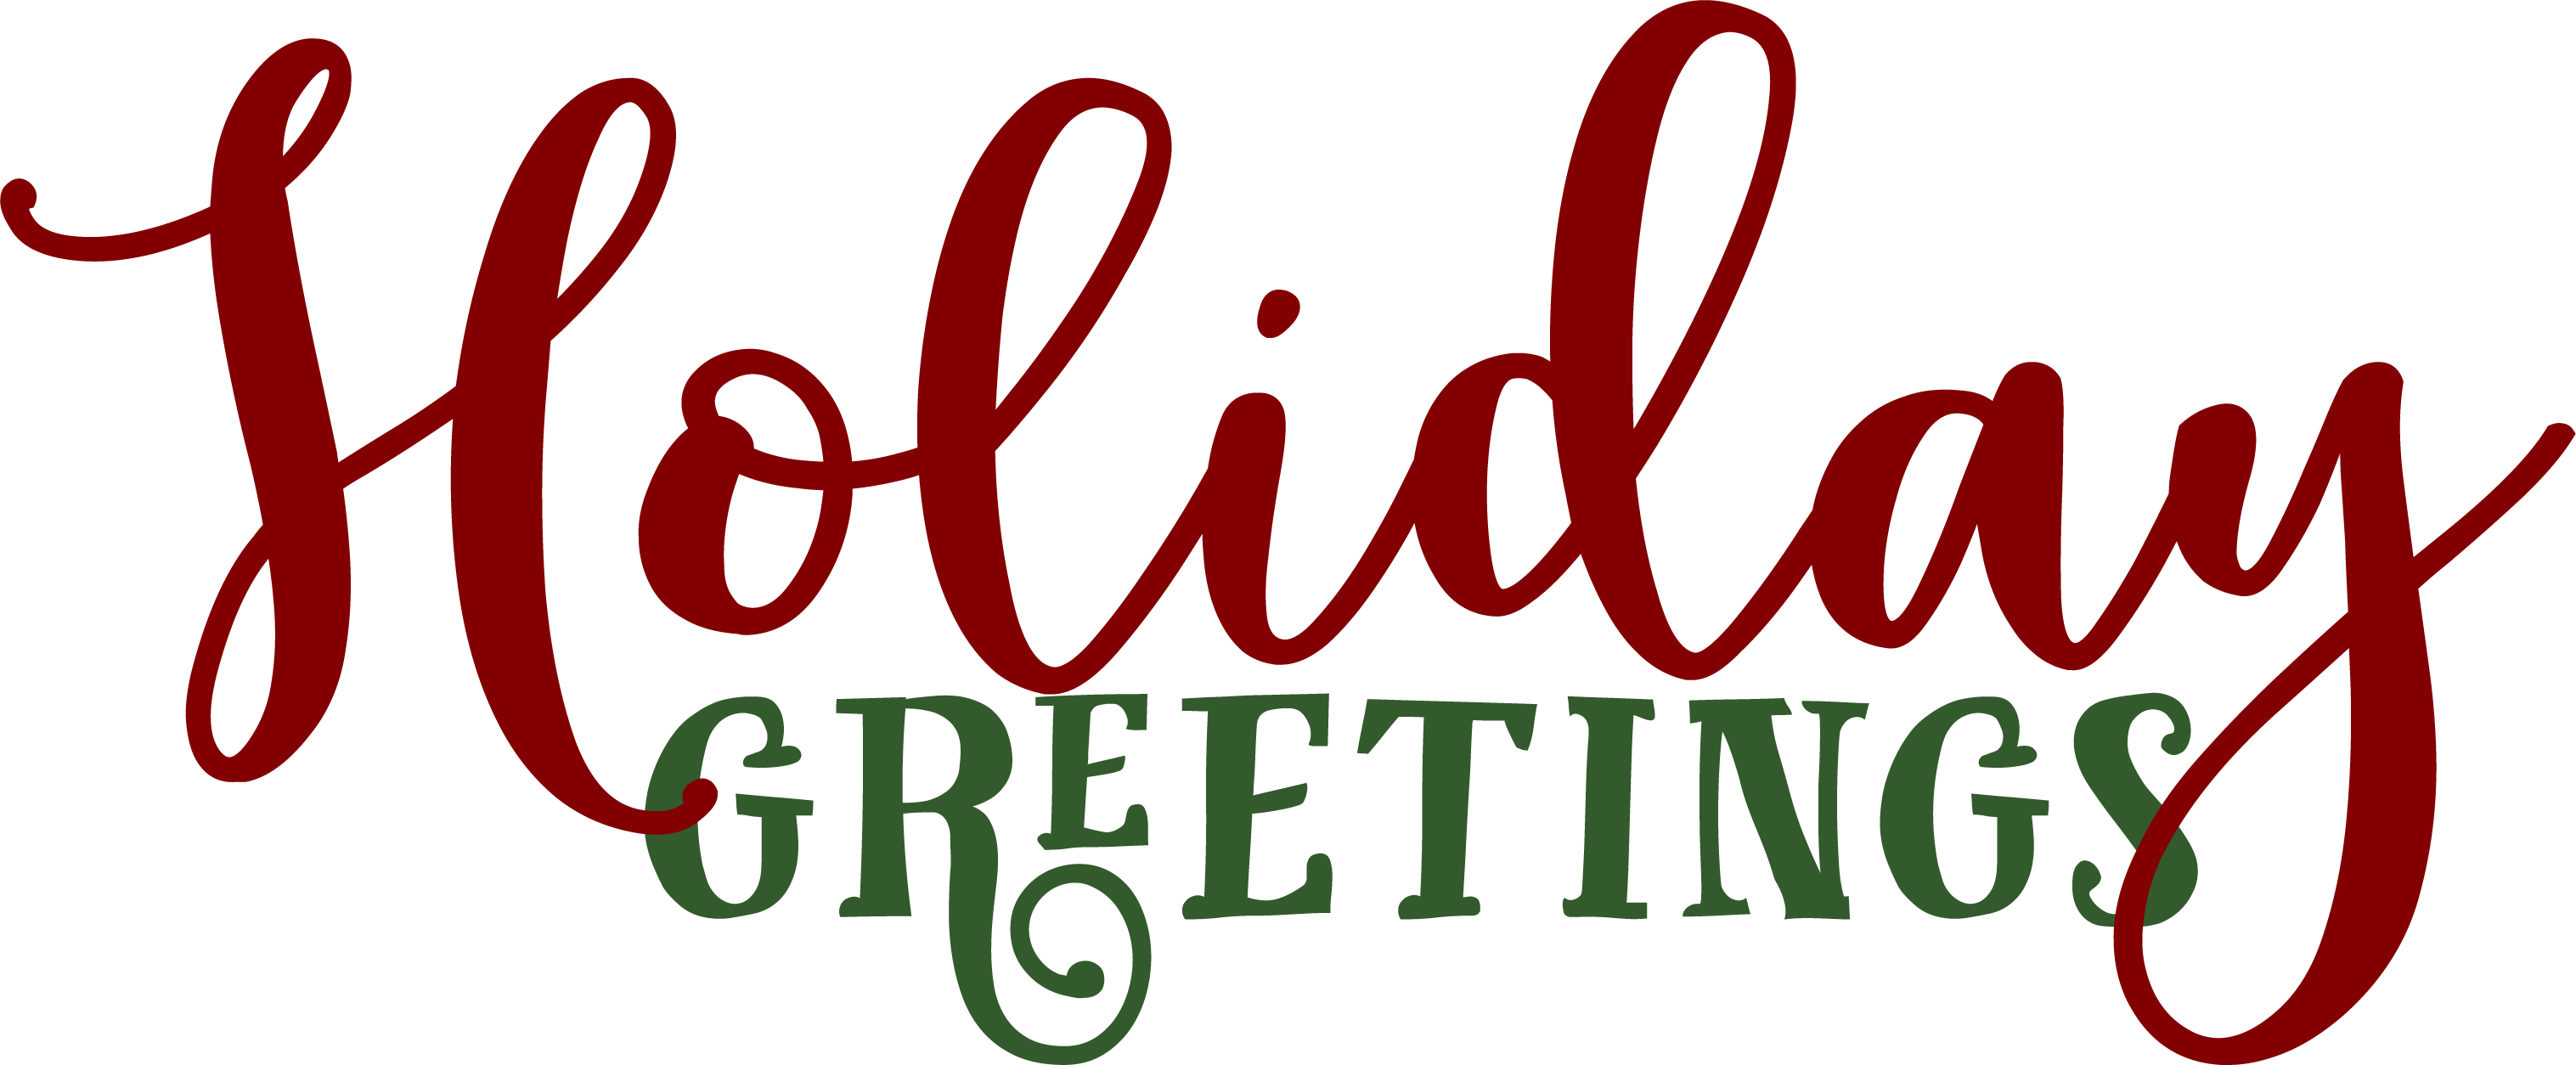 Holiday Greetings SVG Cut File